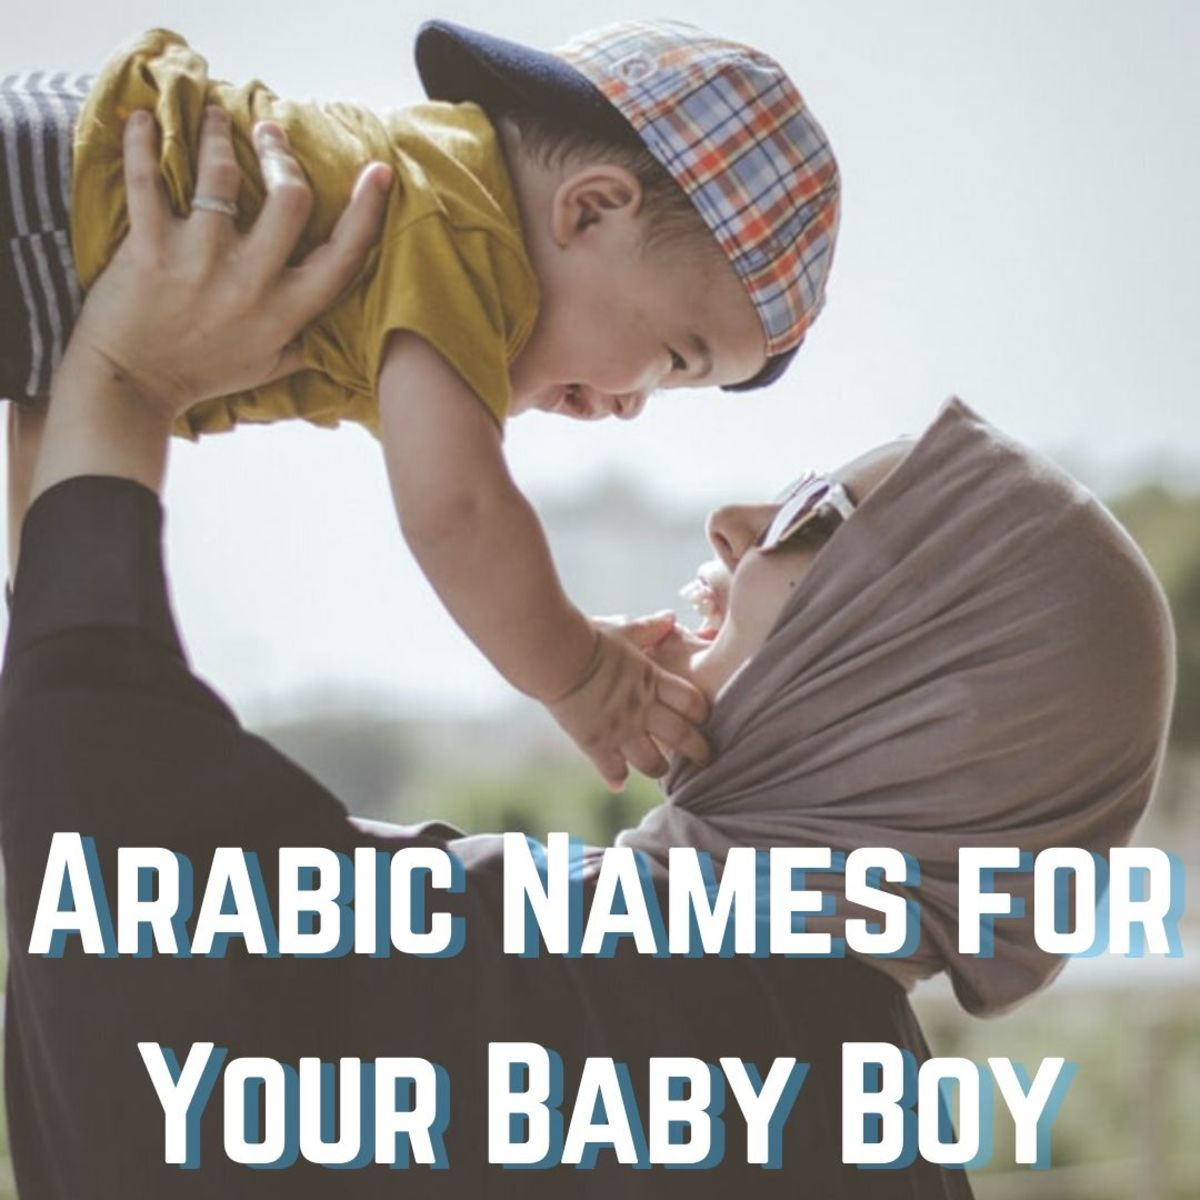 200+ Arabic Baby Boy Names and Meanings (Modern & Cute!)